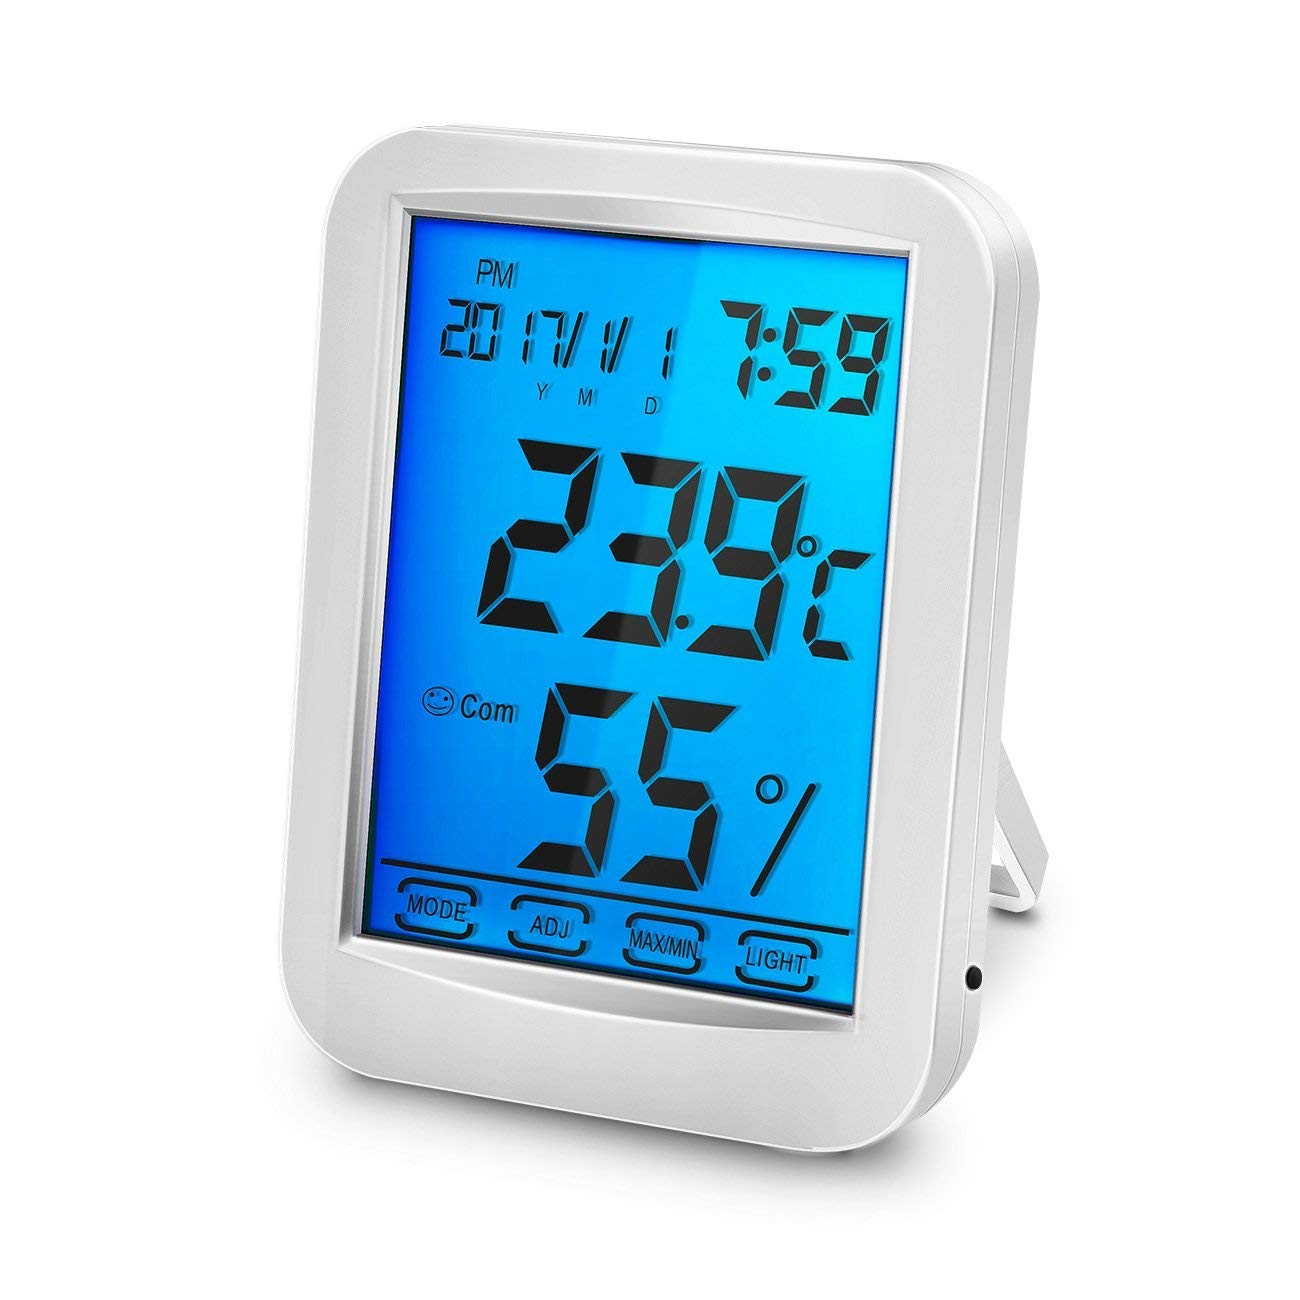 Allnice Digital Backlit LCD Indoor/Outdoor Thermometer Hygrometer with Large Screen Max/Mini Temperature and Humidity Values Clock Calendar and Alarm for Indoor and Outdoor (with Backlit)